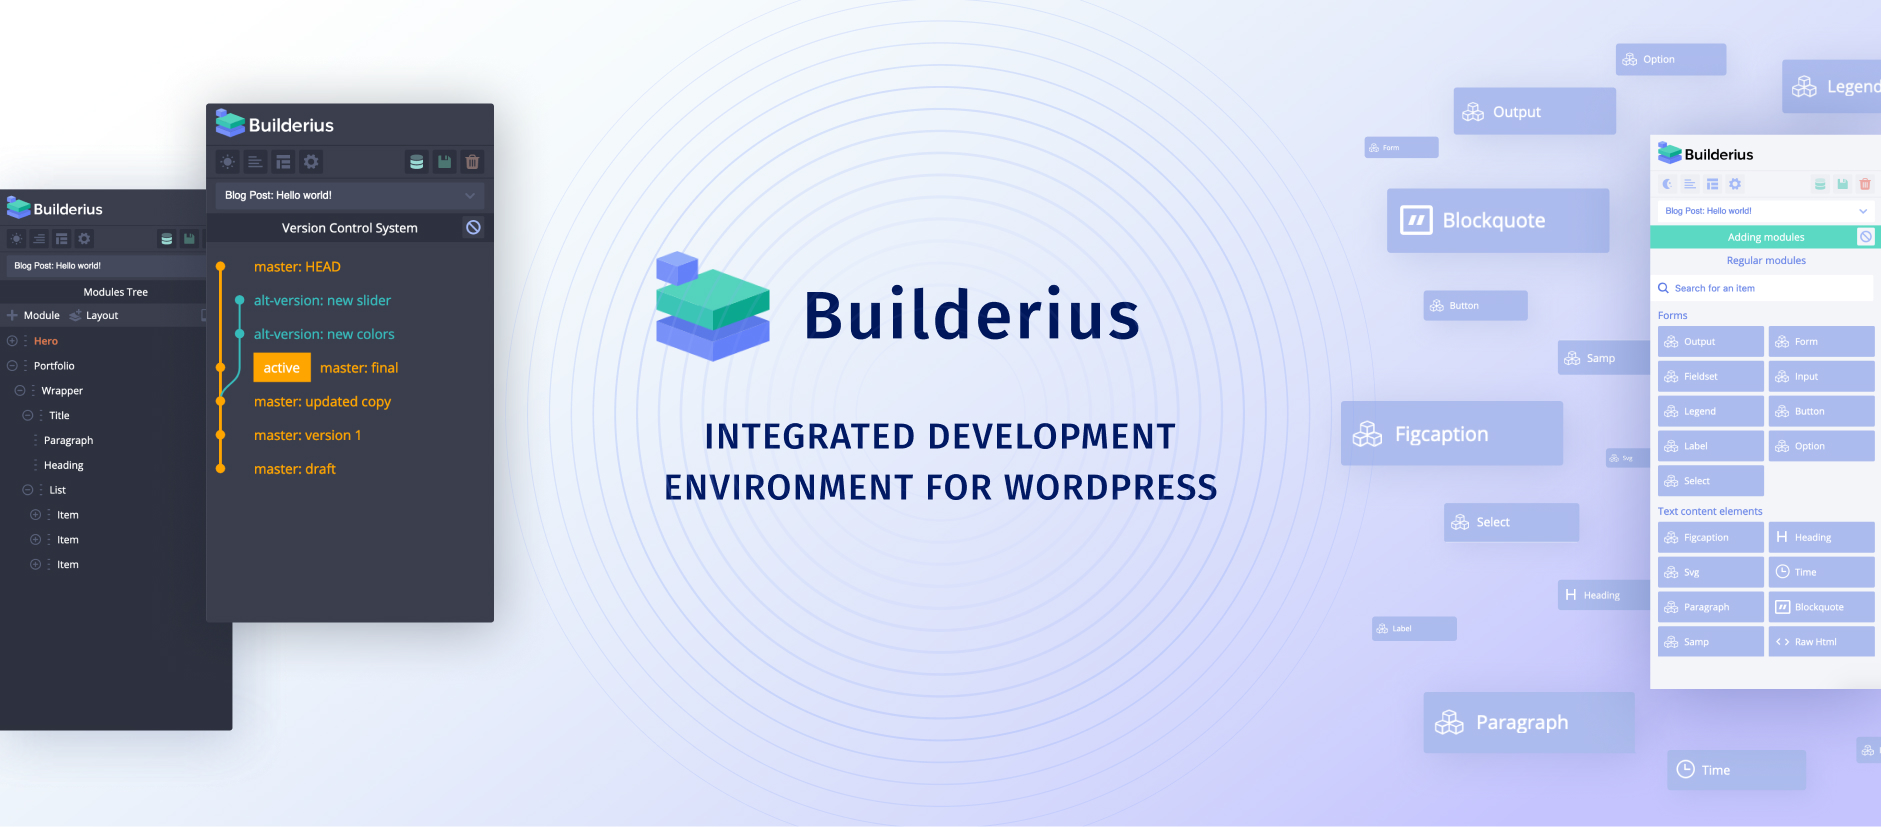 Introducing Builderius 0.9.3: GraphQL support, new templating system and more!